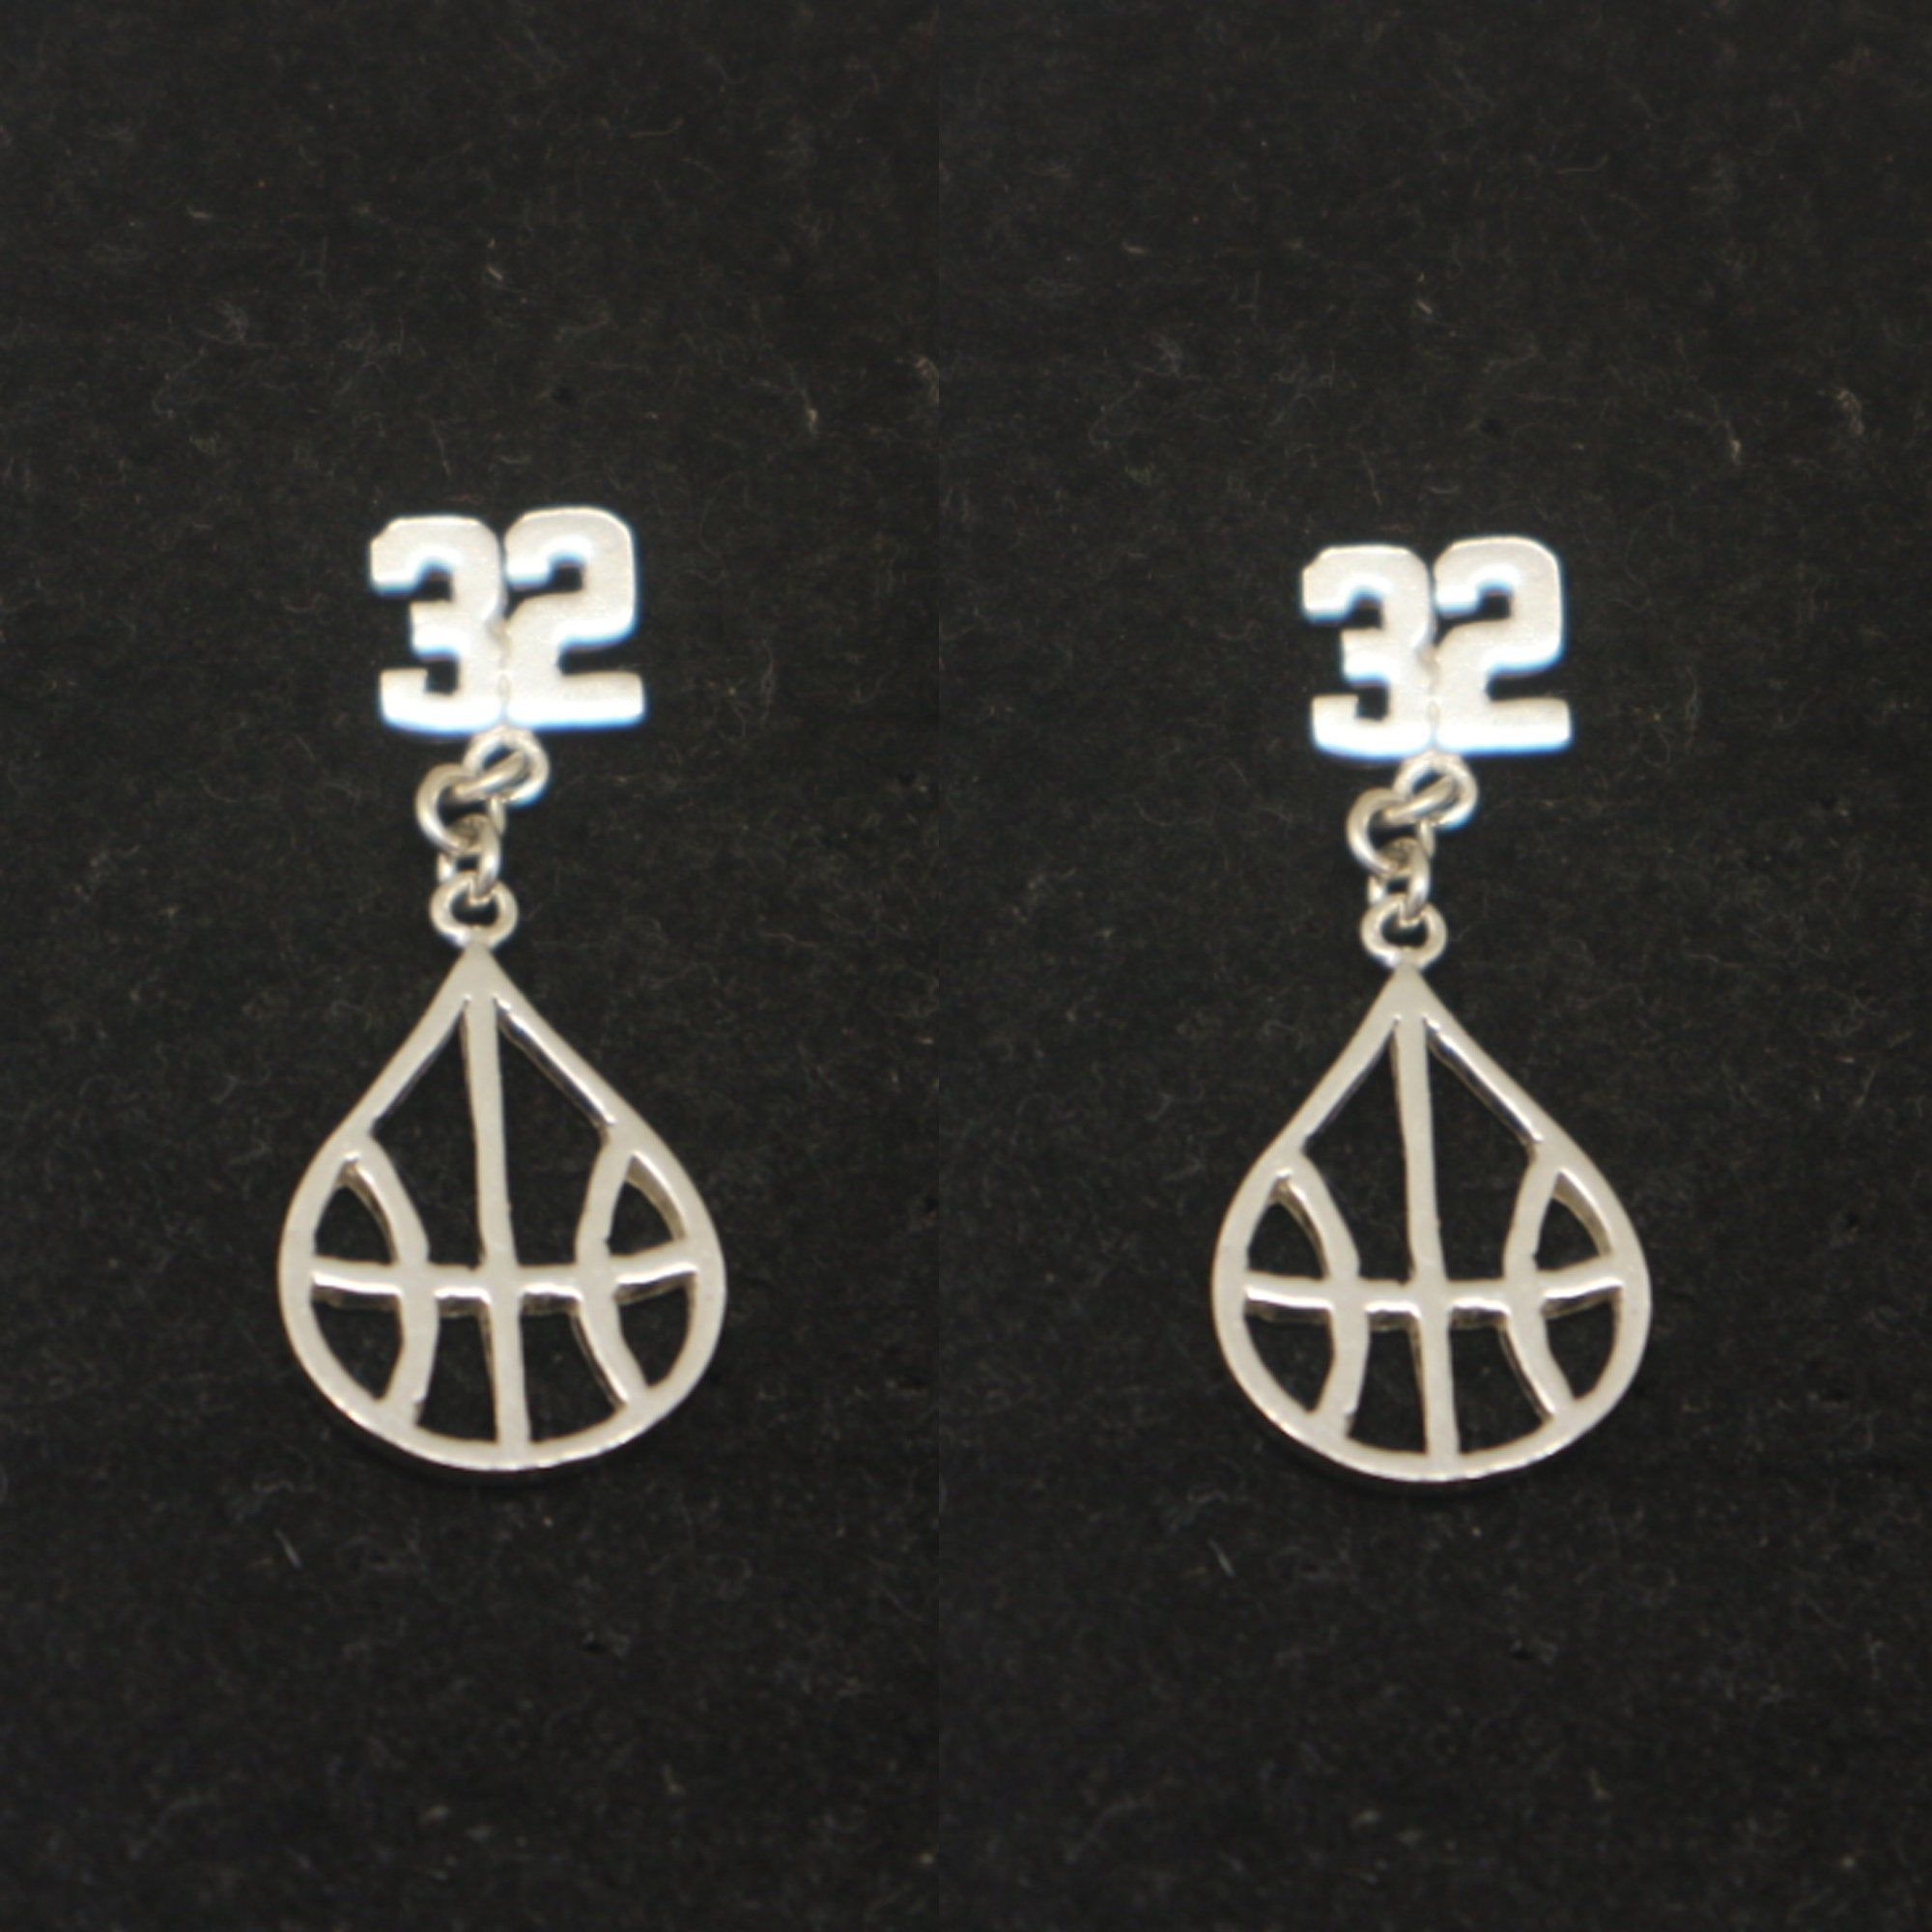 Mother Basketball Jewelry Ear Jacket Gift for Mom Girlfriend Team Couch Gift Silver Basketball and Number Stud Earring